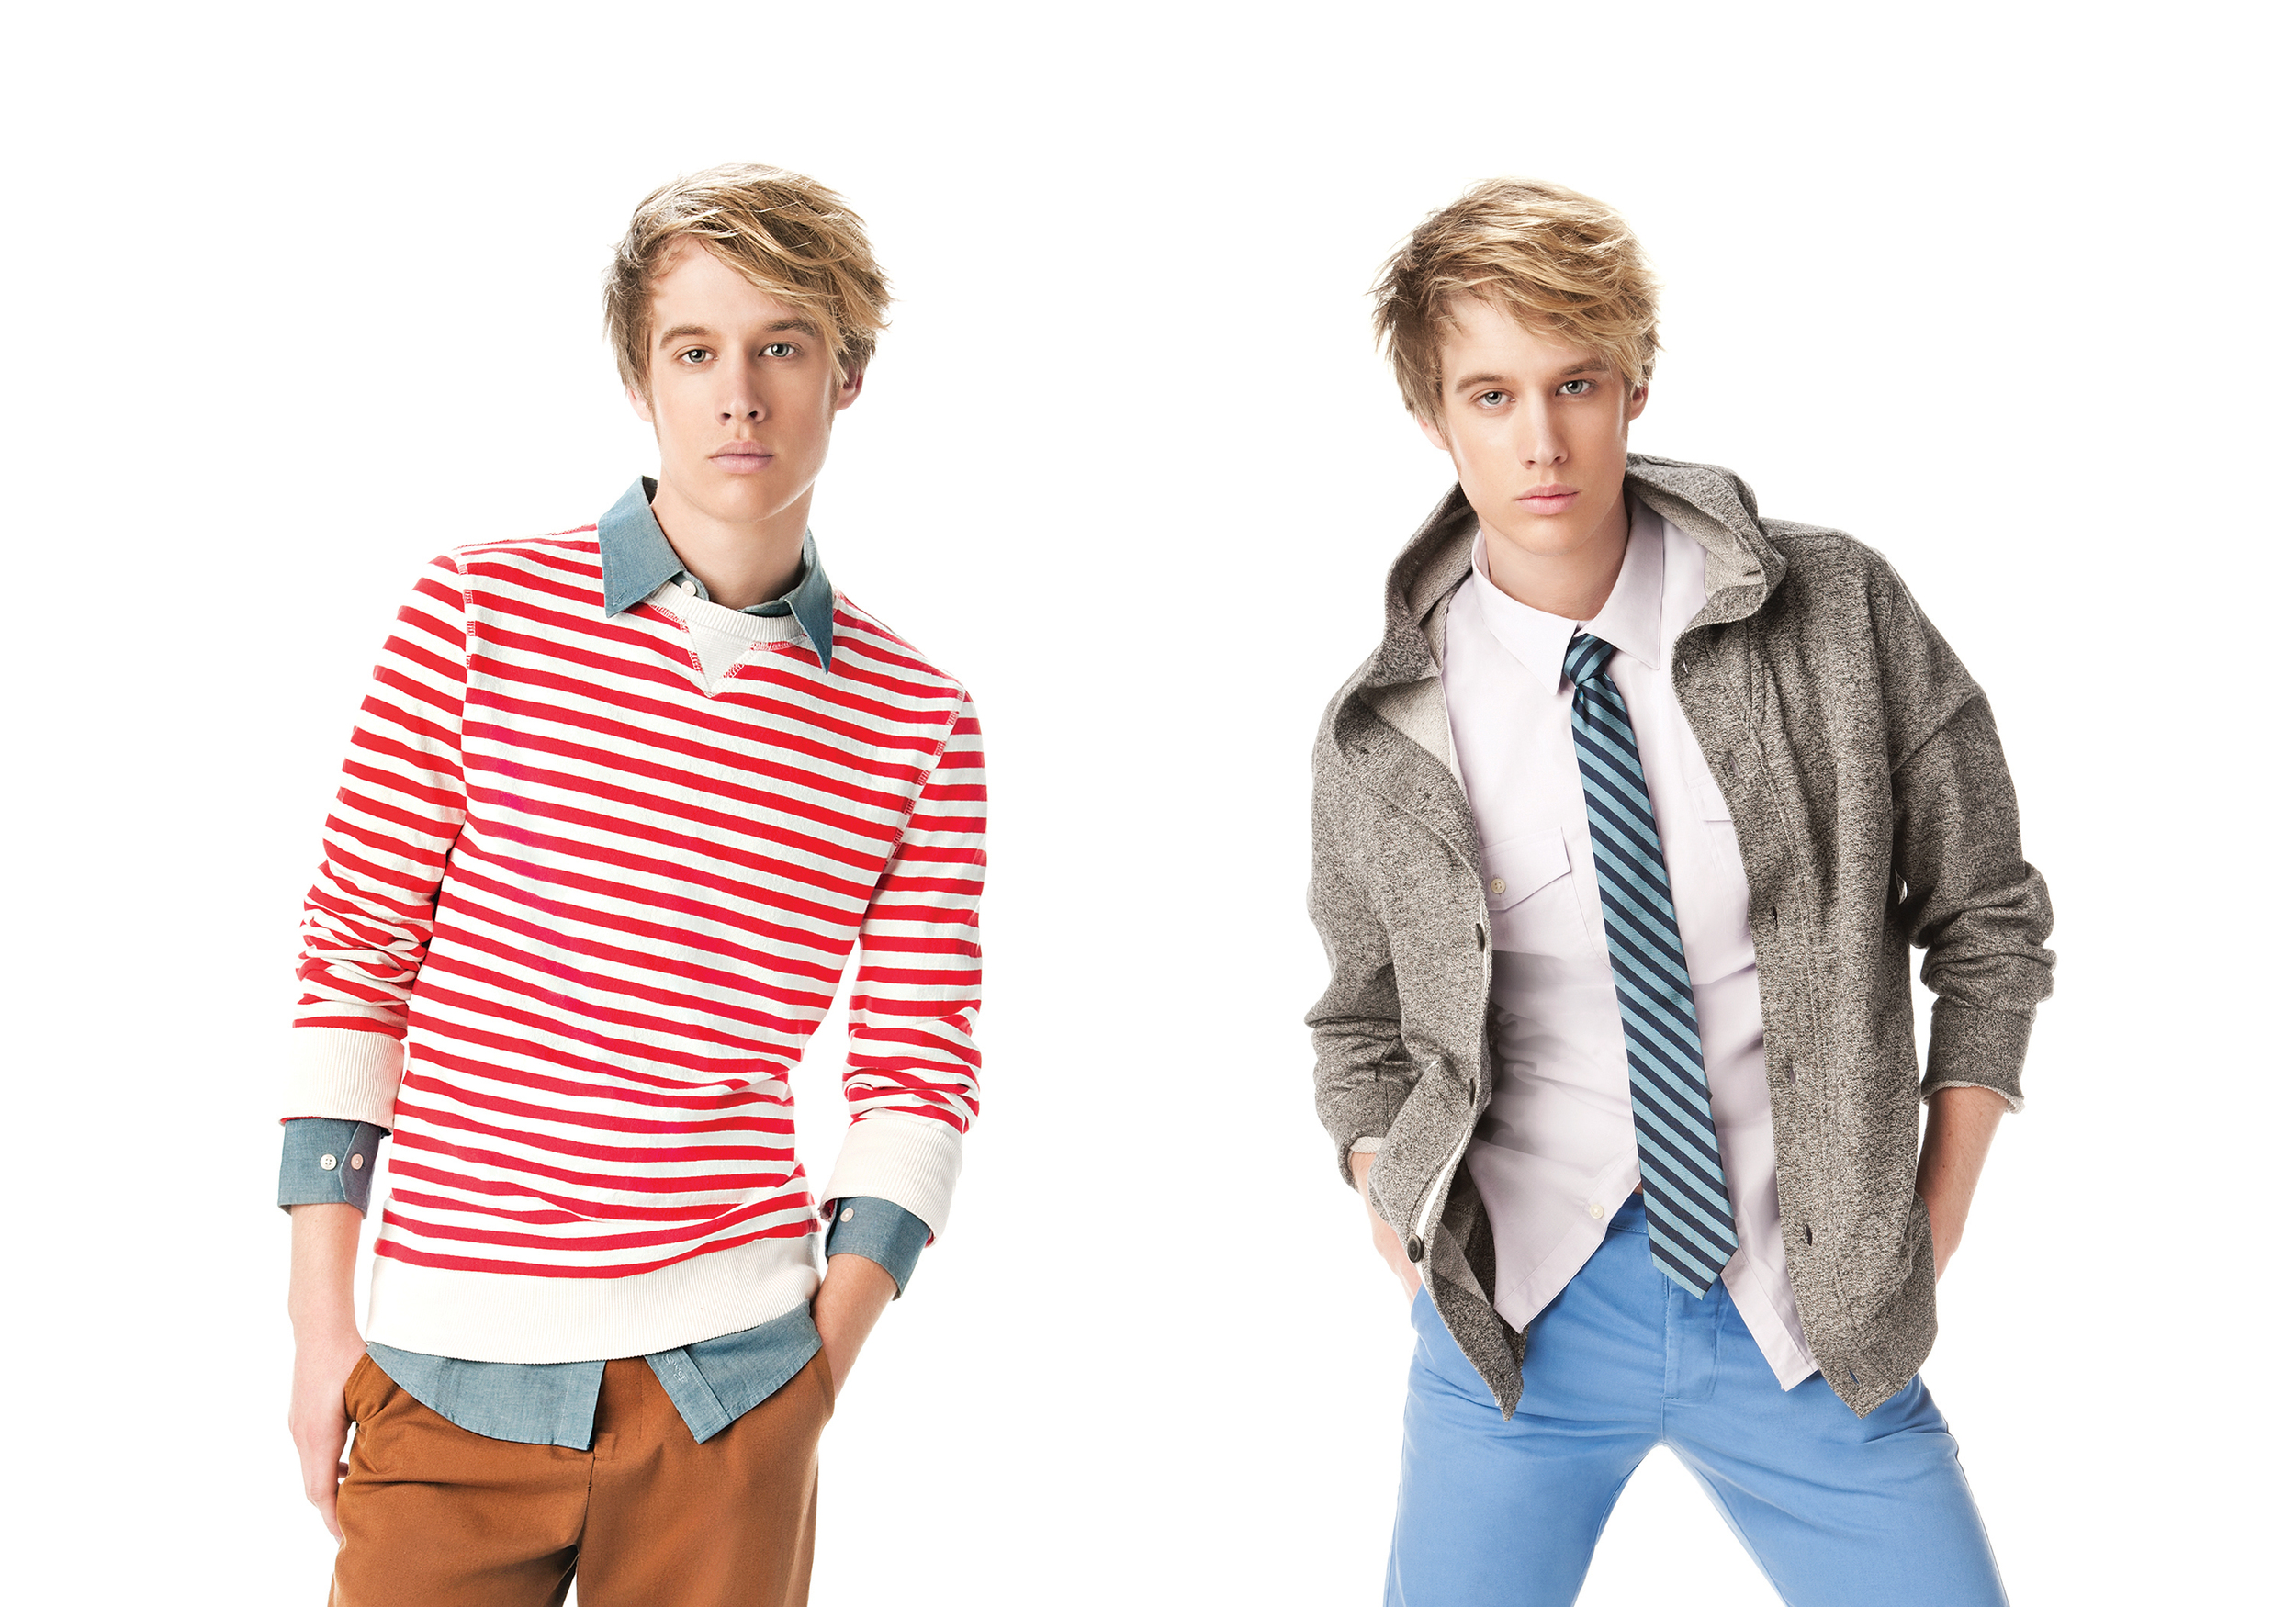 Men's Fashion retouching at Thomas Canny studio.jpg